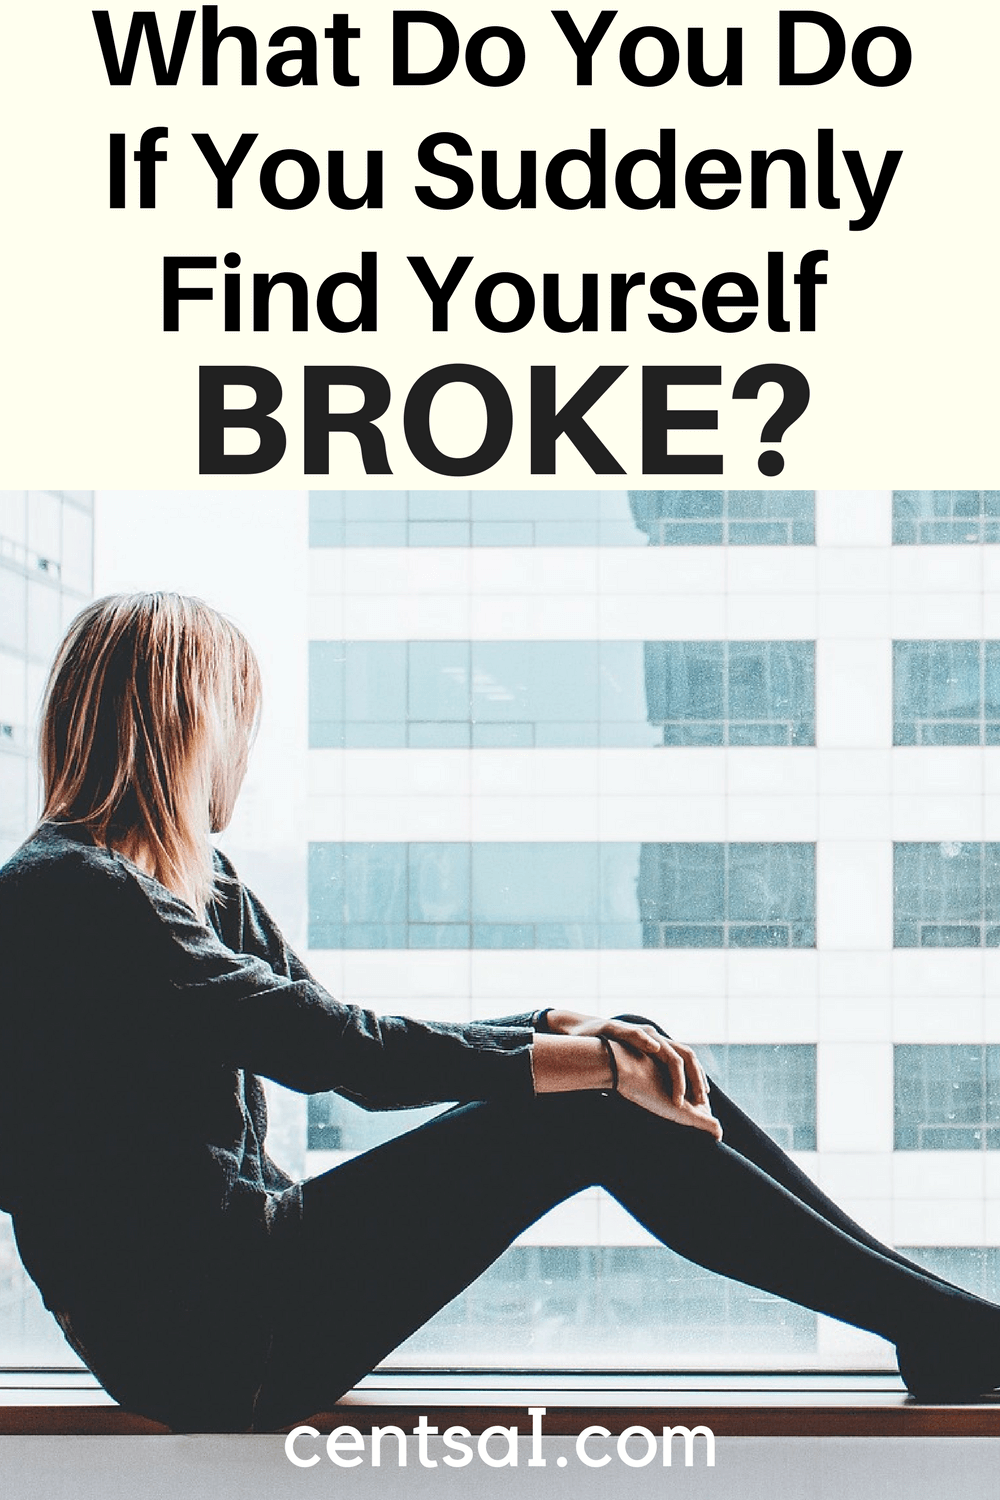 What Do You Do If You Suddenly Find Yourself Broke?